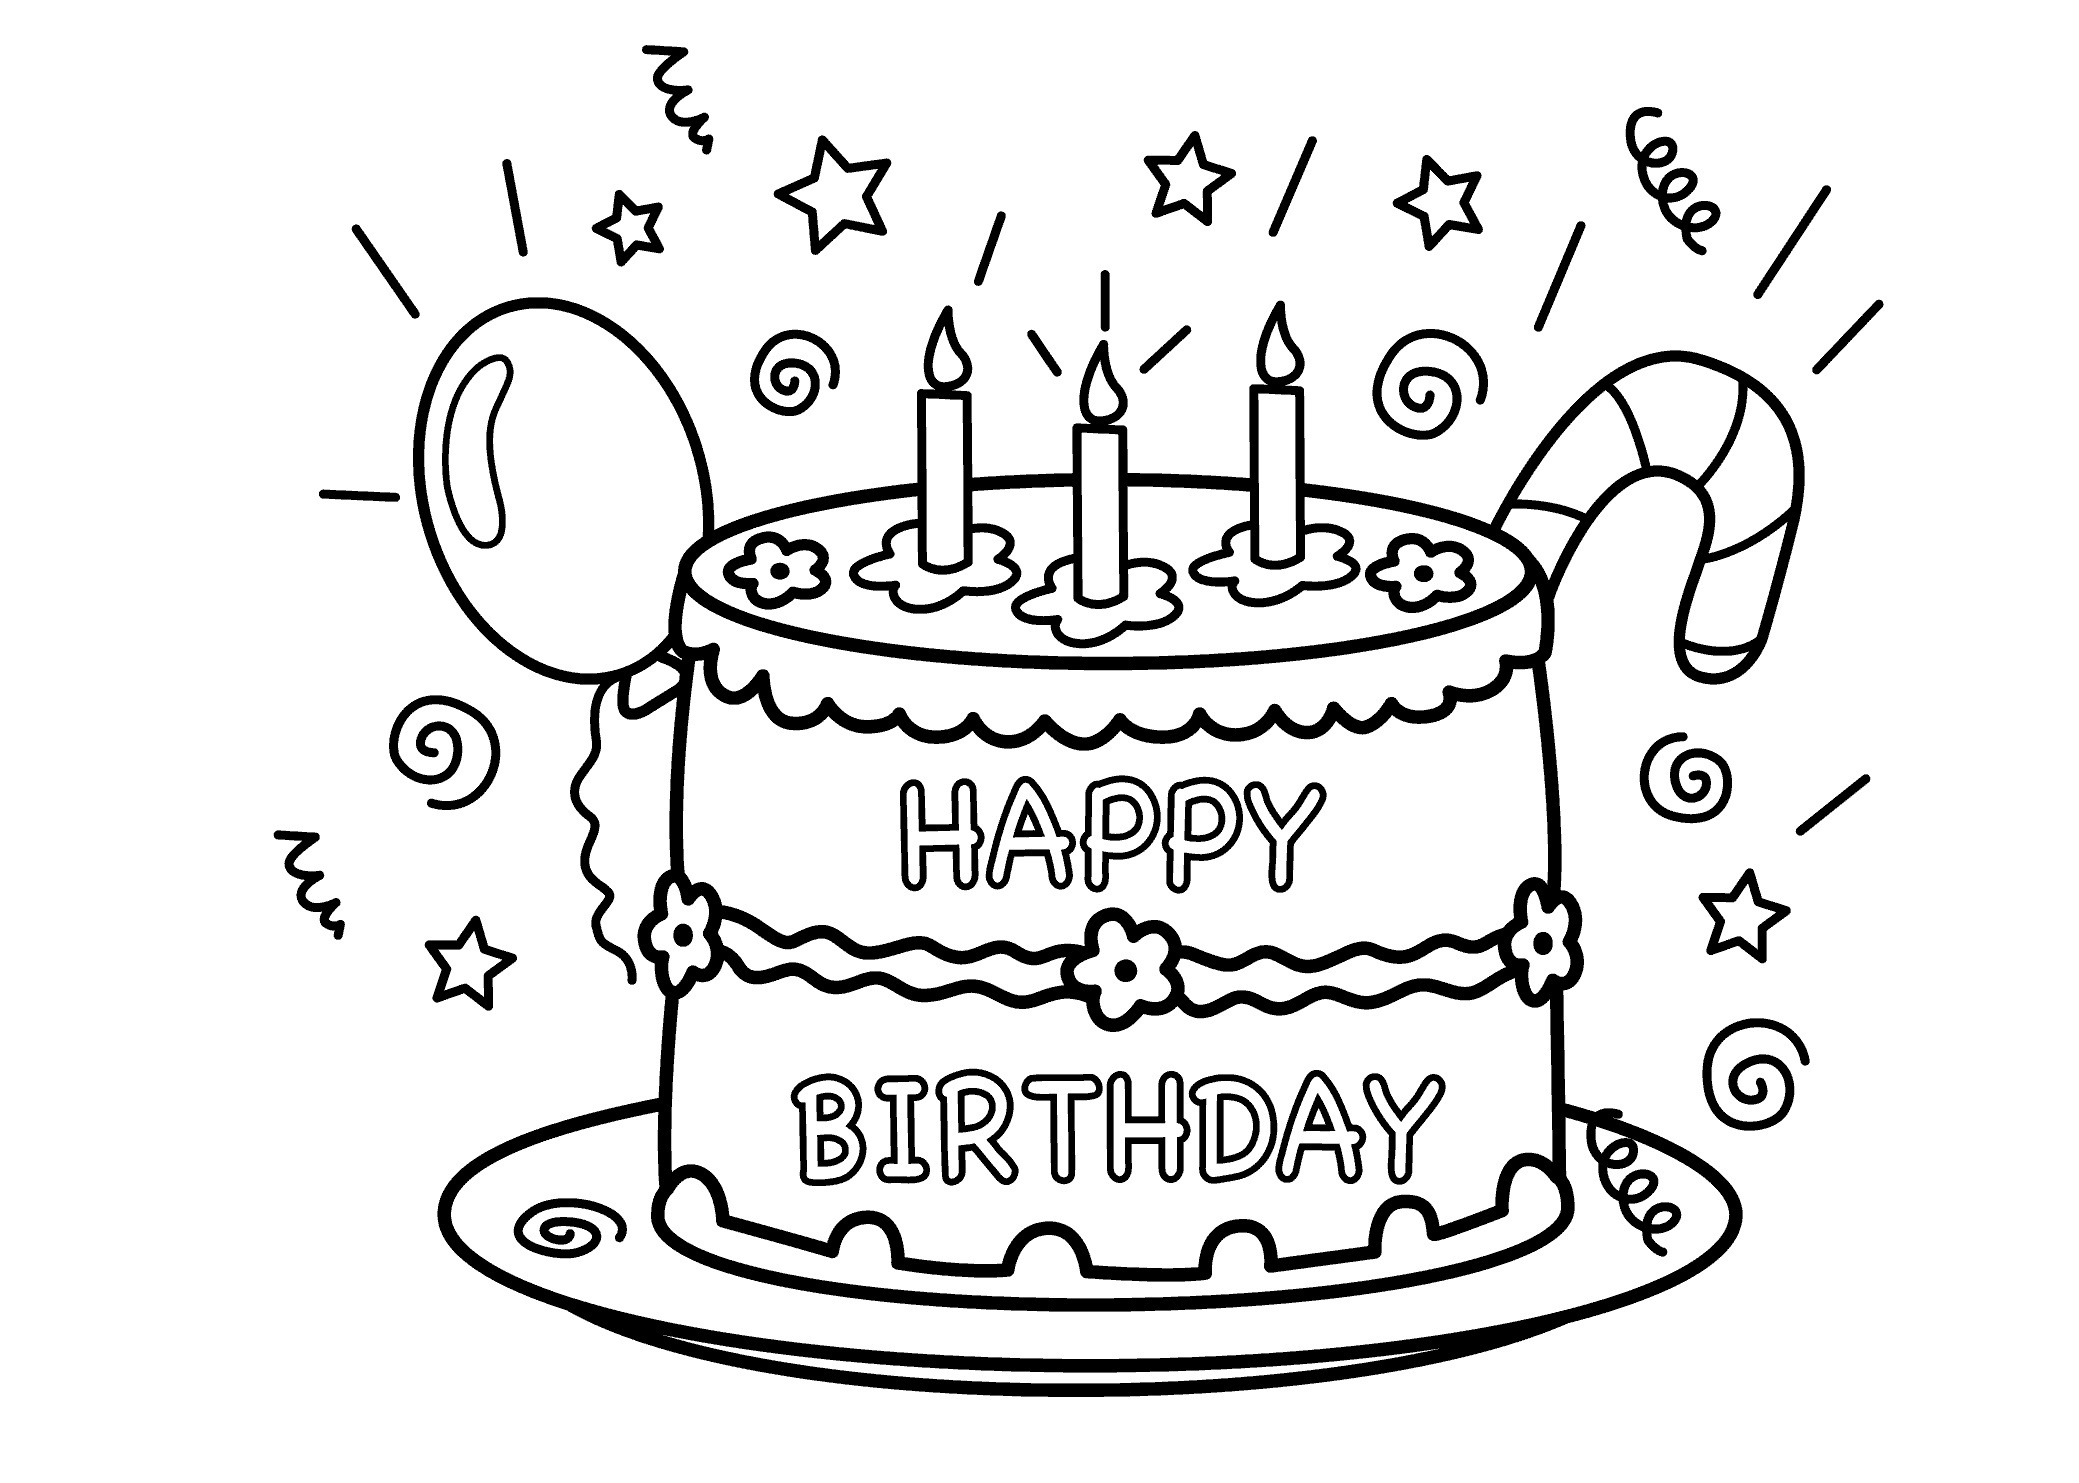 Cake Pictures To Print And Colour : Free Printable Birthday Cake Coloring Pages For Kids